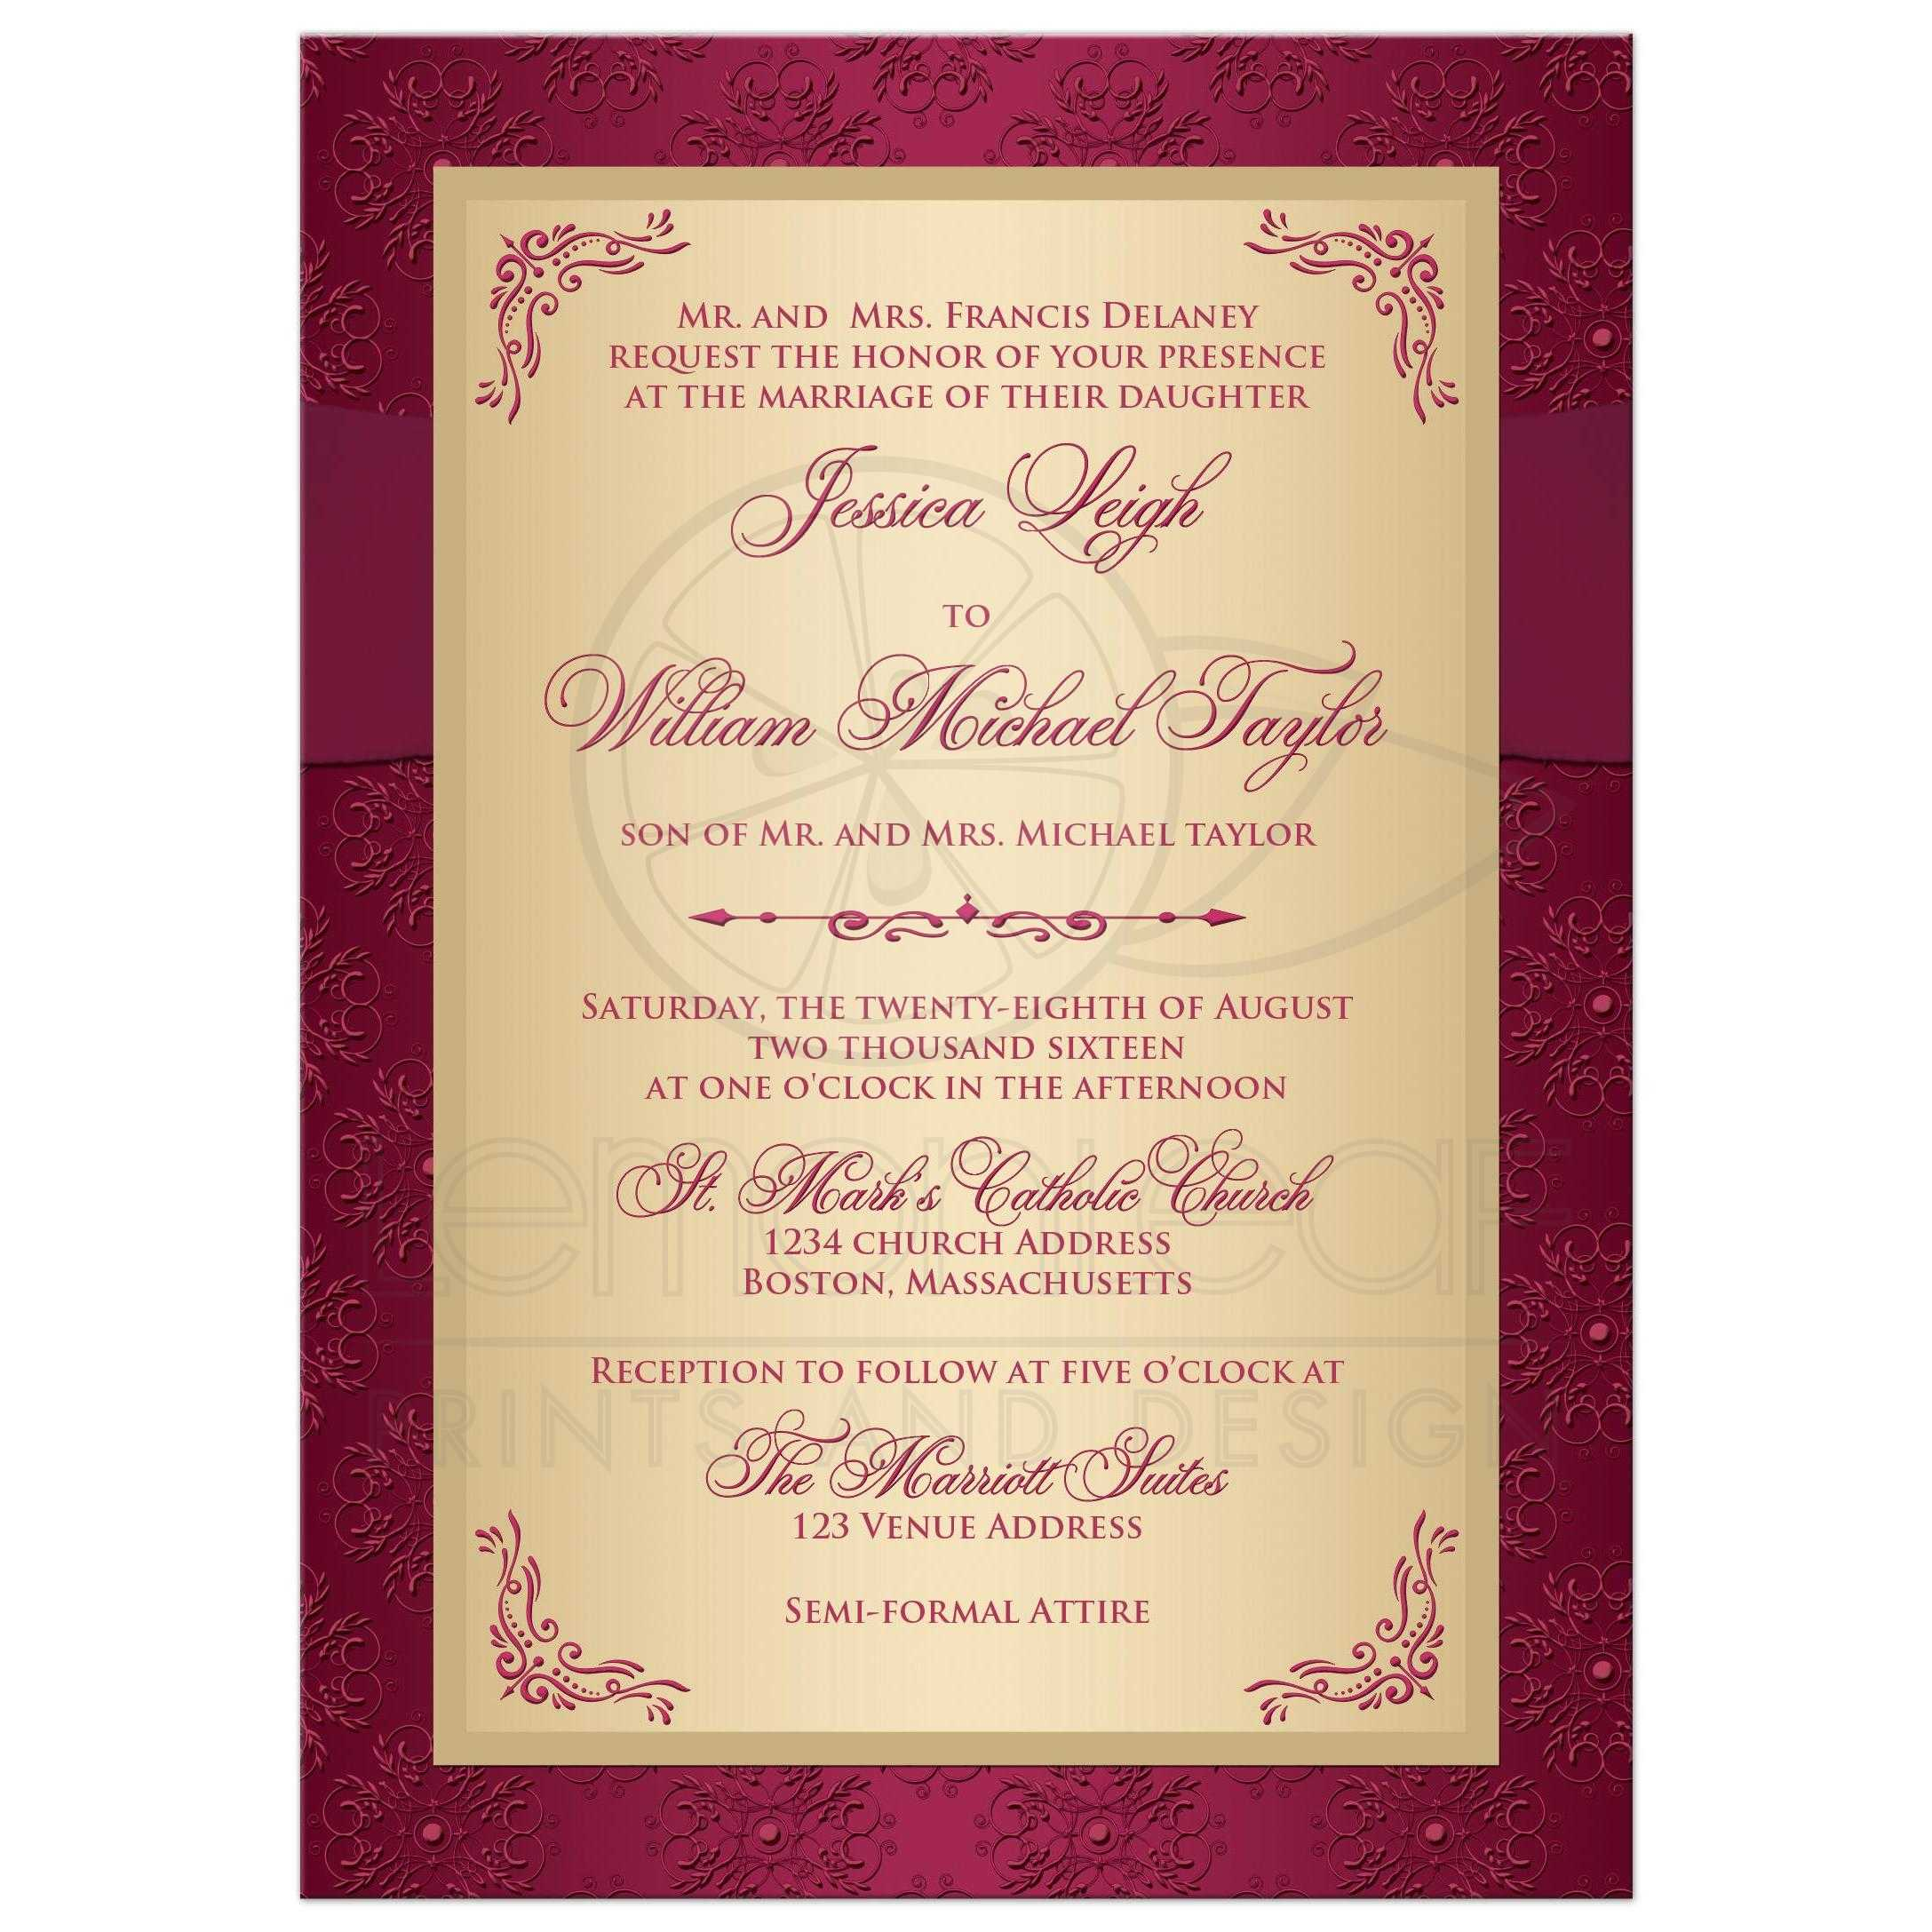 Wedding Invitations Autumn was adorable invitations example